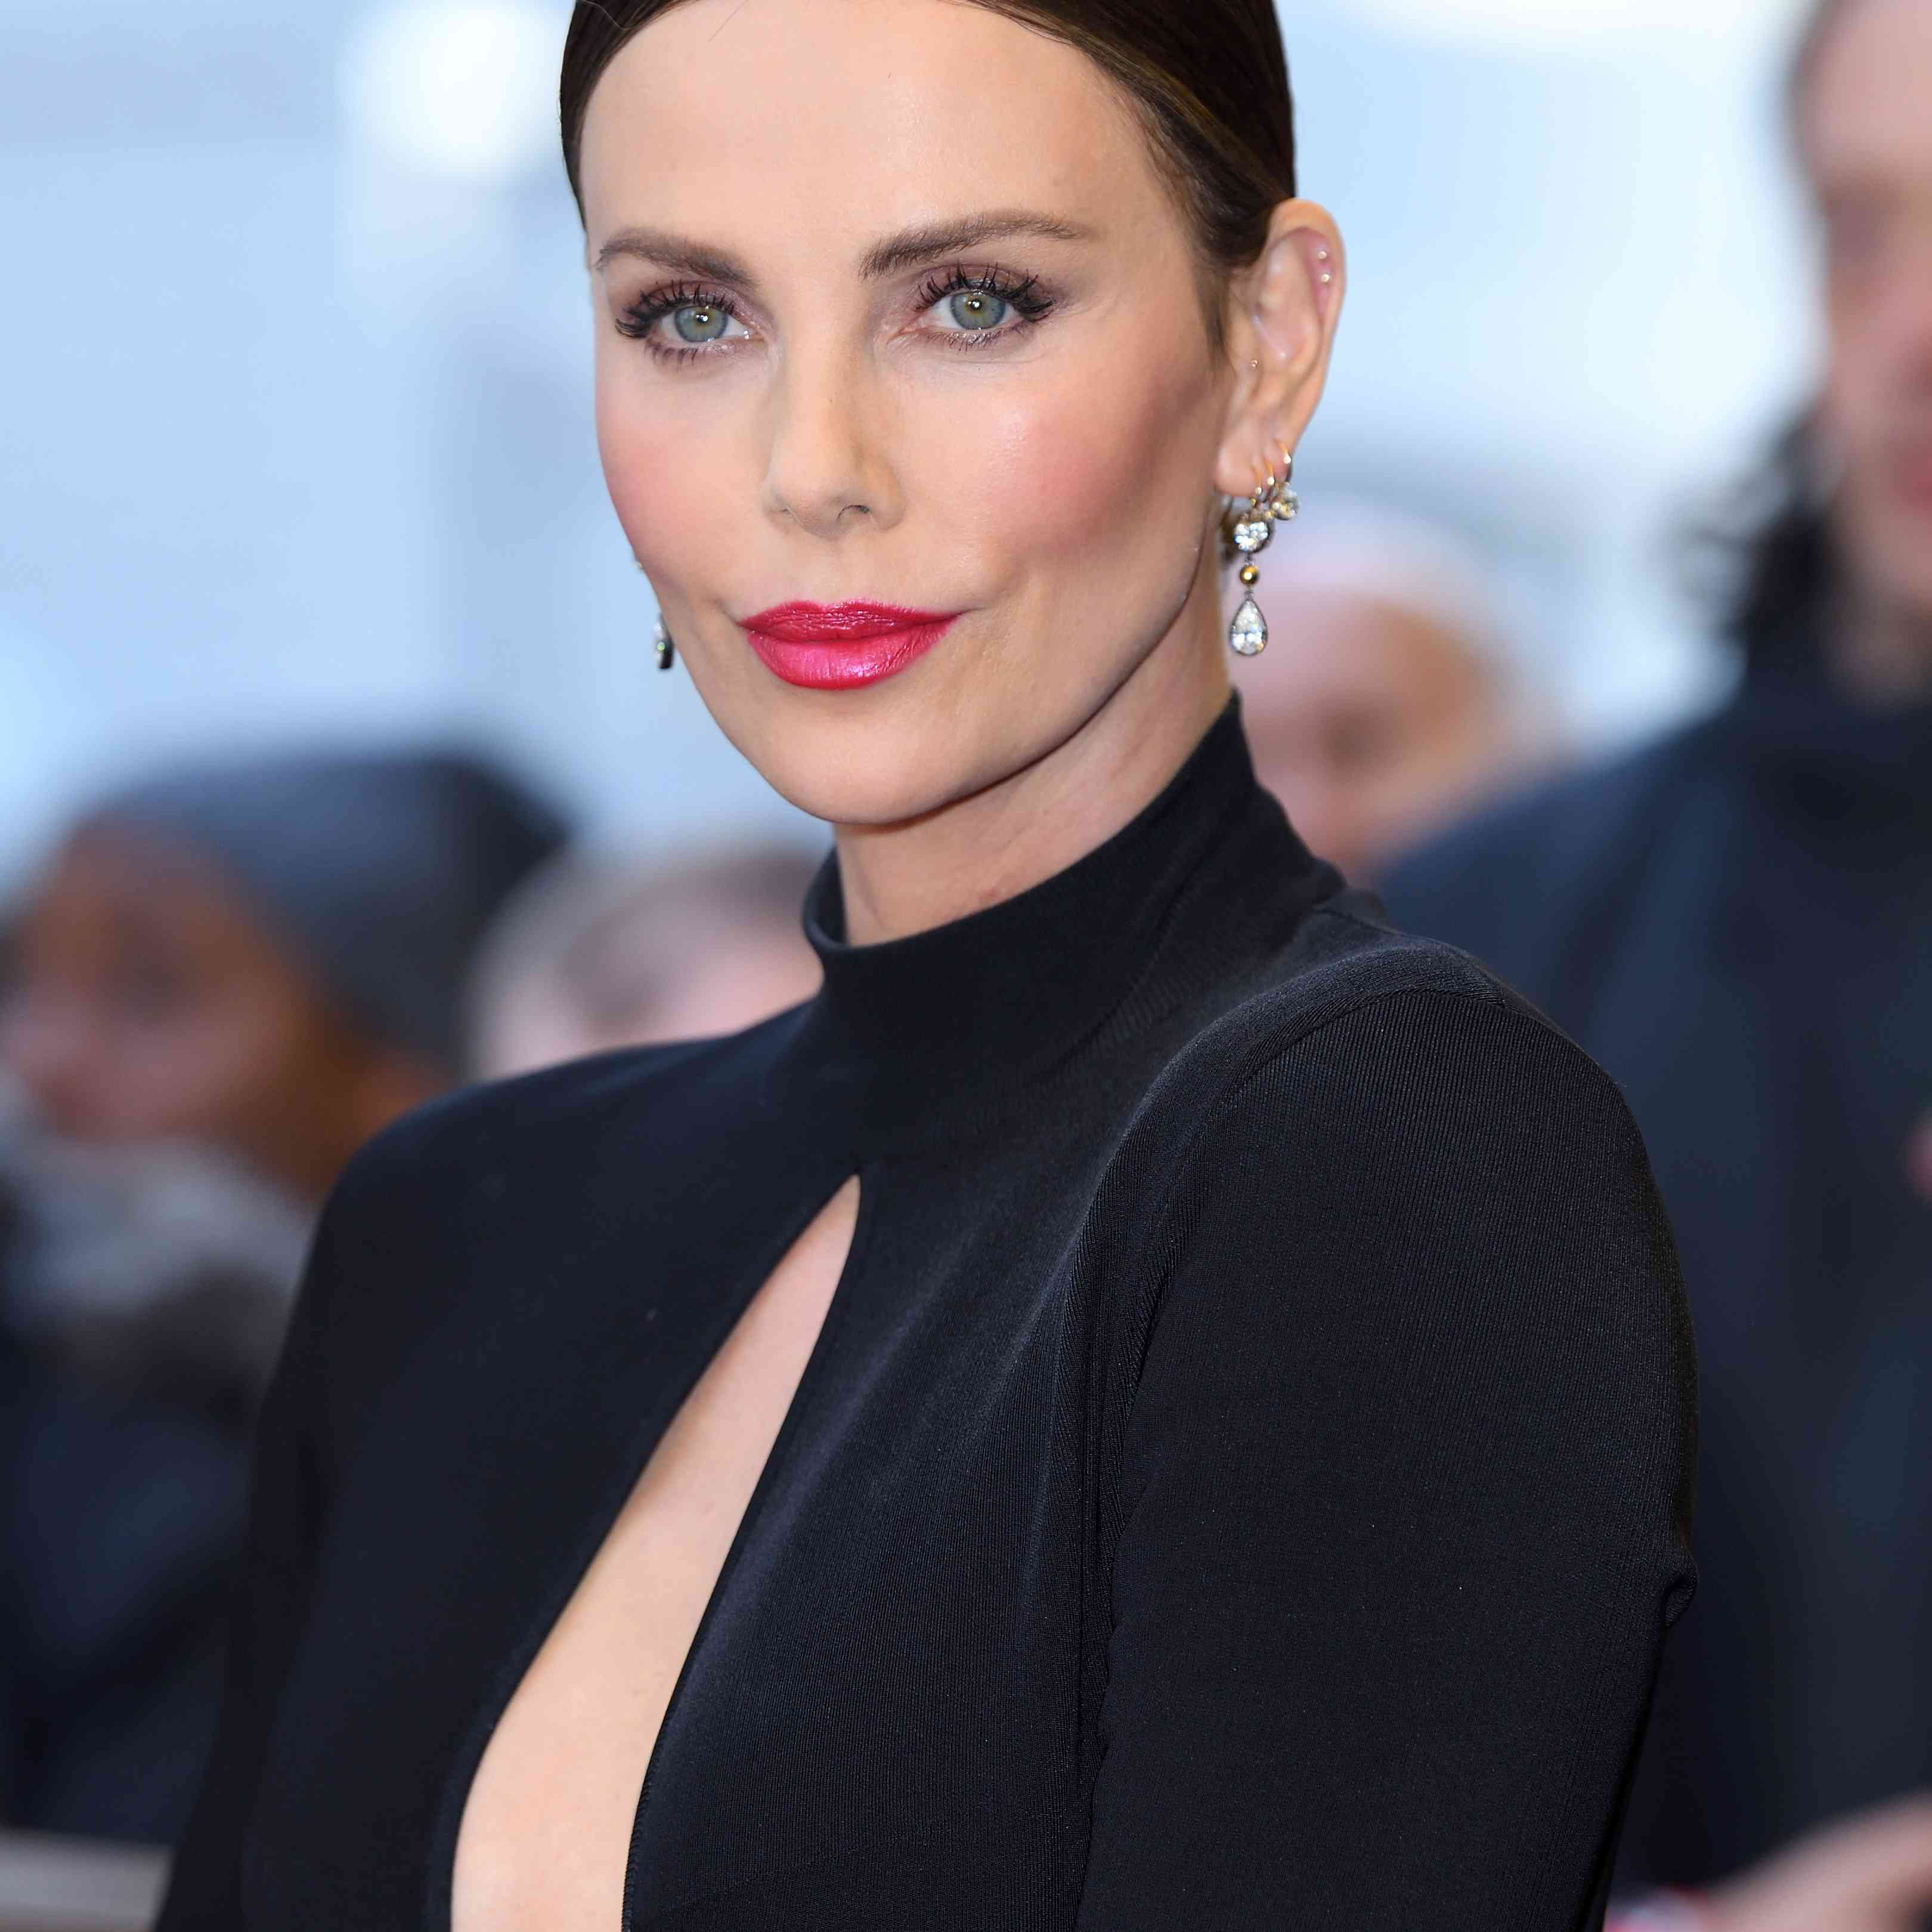 Charlize Theron wearing magenta lipstick and a black dress